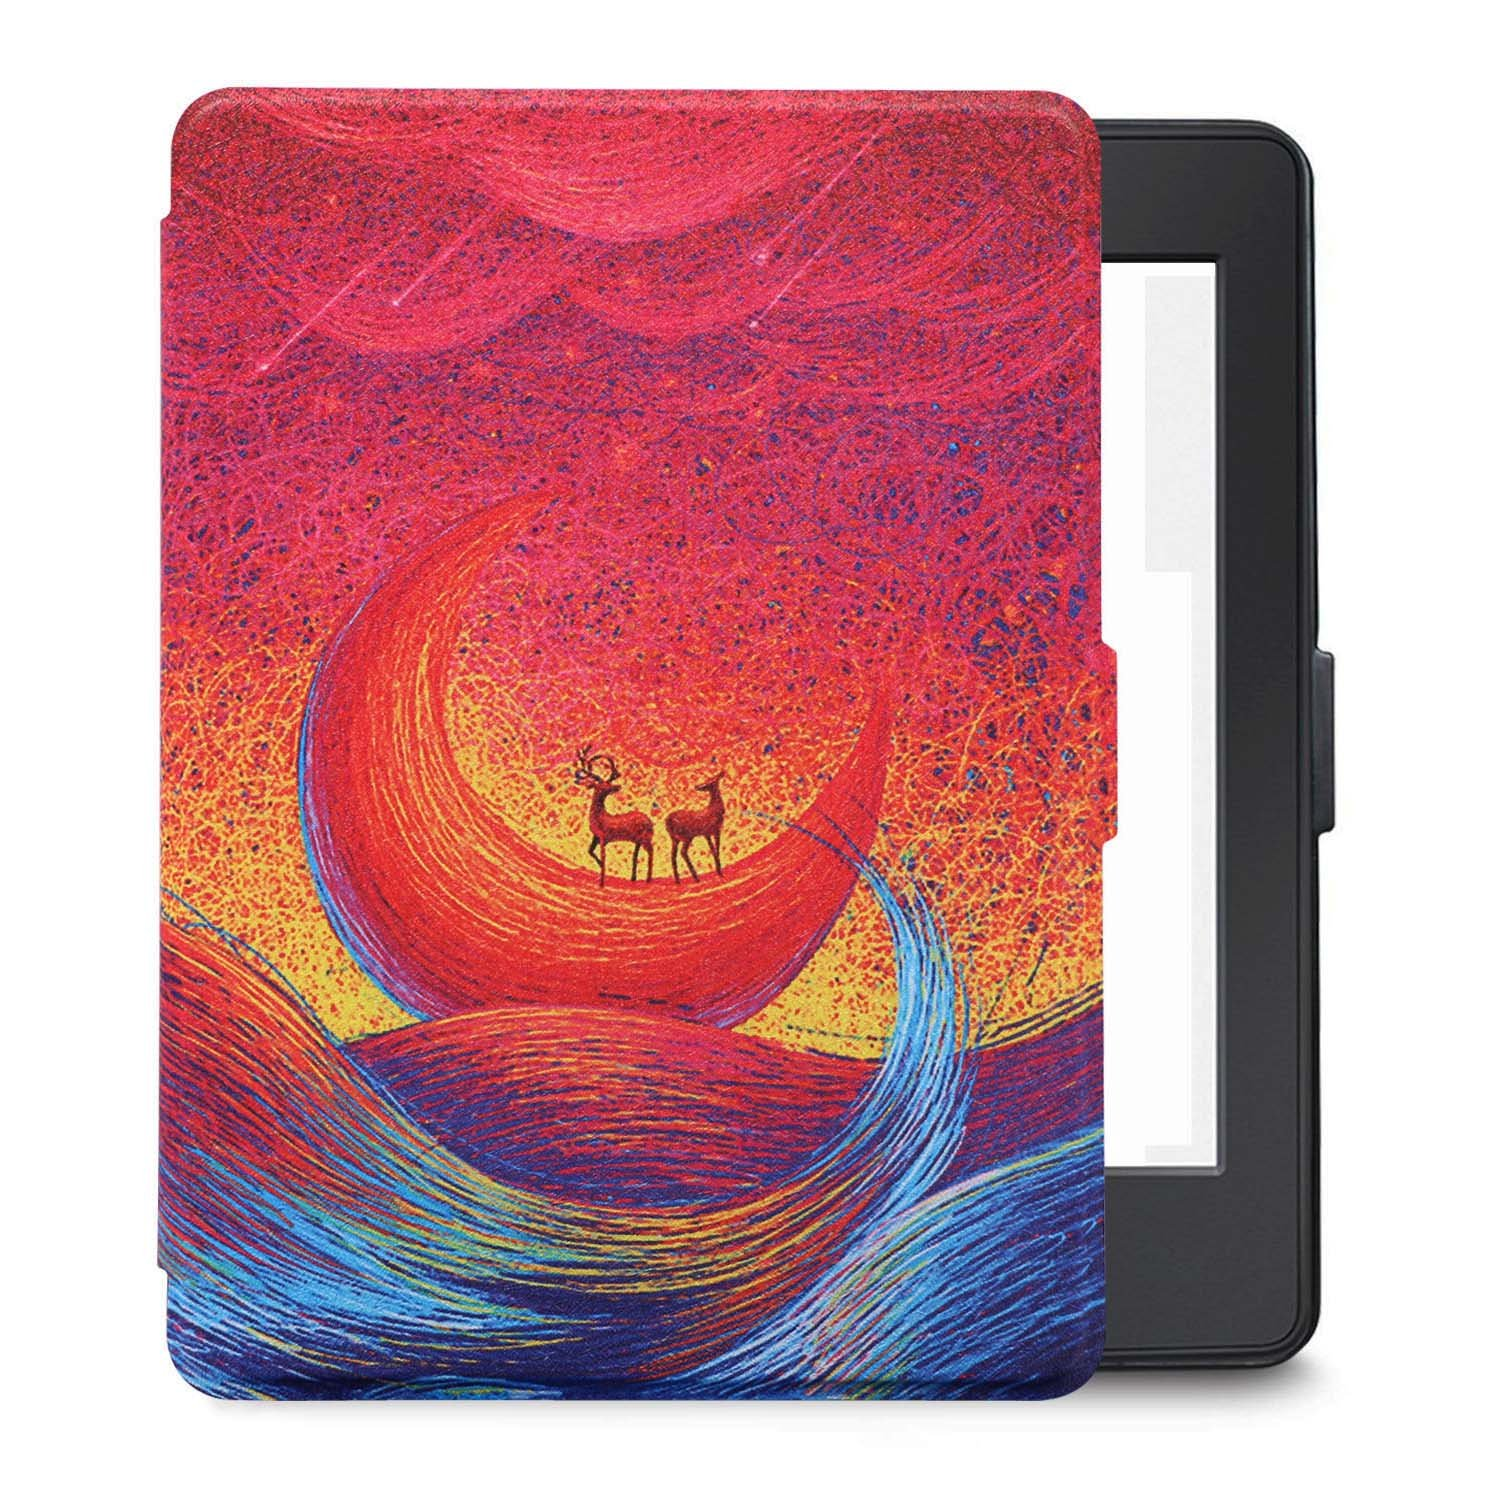 LHHZ-U Kindle Paperwhite case cover,Premium Leather Smart Cover for Kindle Paperwhite,Auto Wake/Sleep,Fits 2012,2013,2015 and 2016 Versions. (Color of the moon) by LHHZ-U